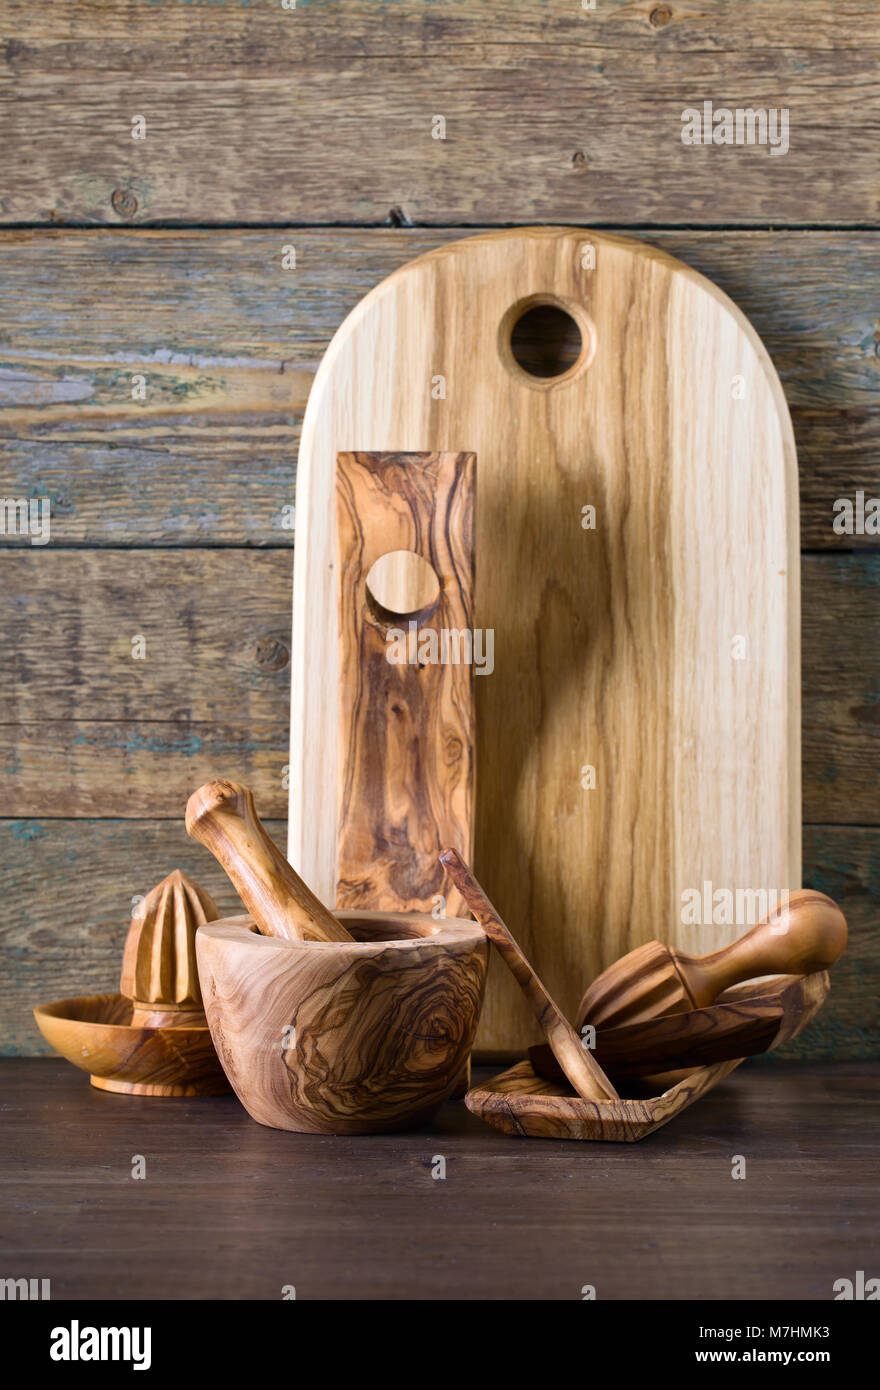 Set of wooden kitchen utensils made from olive wood